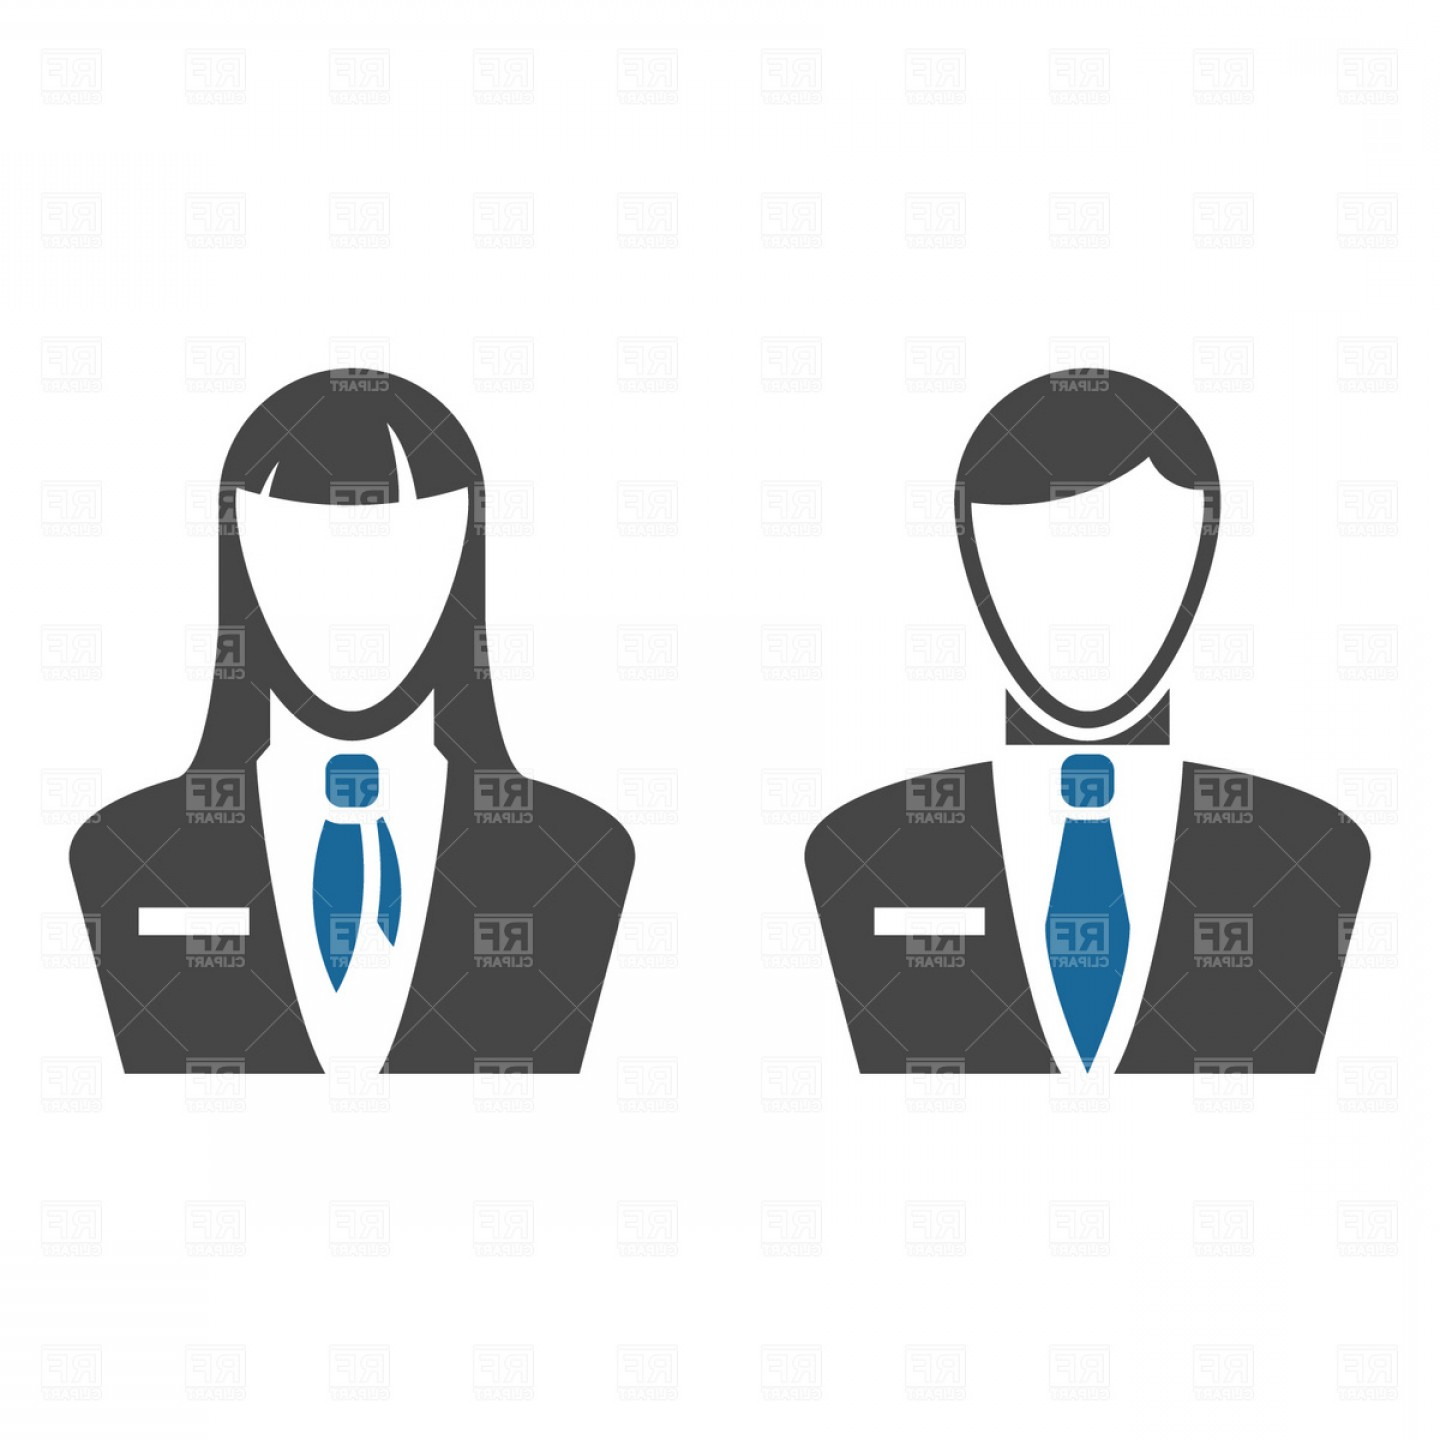 Free Vector Business People Icon: Business People Icons Vector Clipart